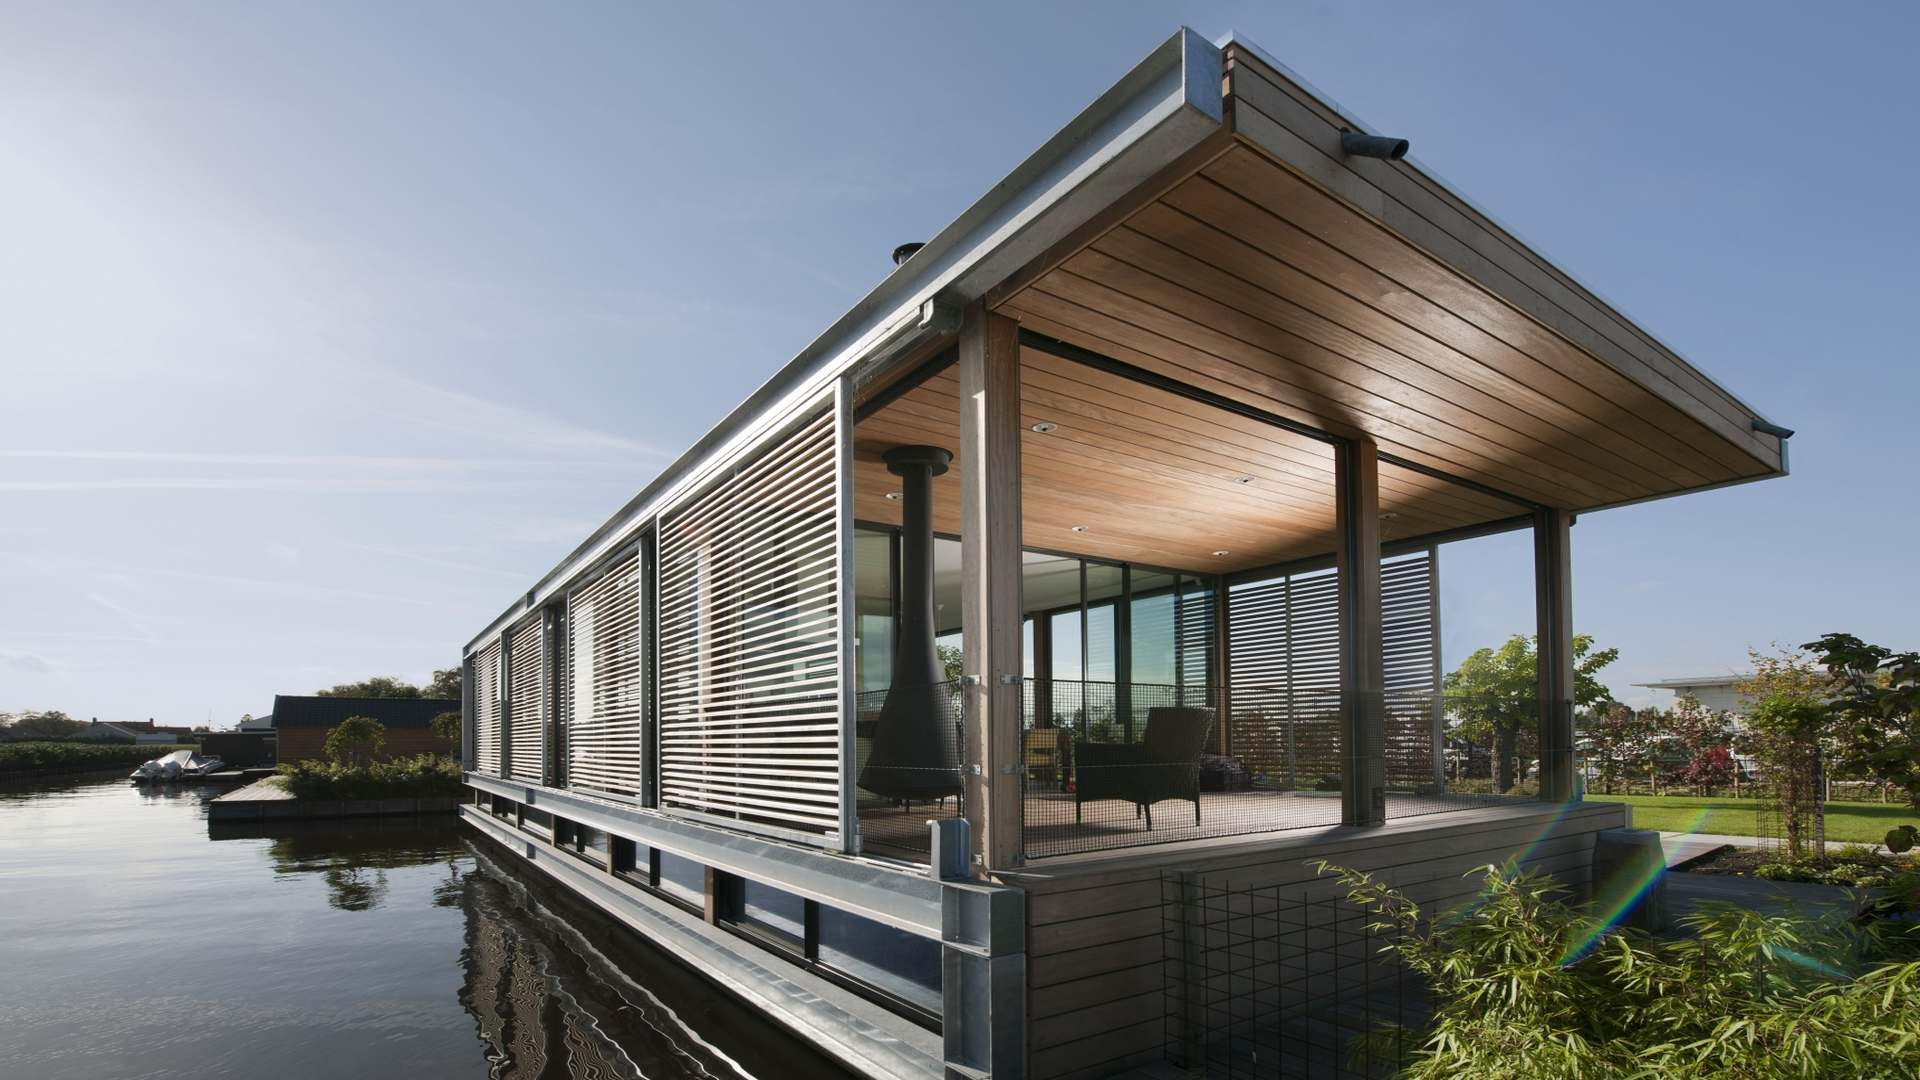 Woonboot te koop woonarken pinterest floating house for House te koop